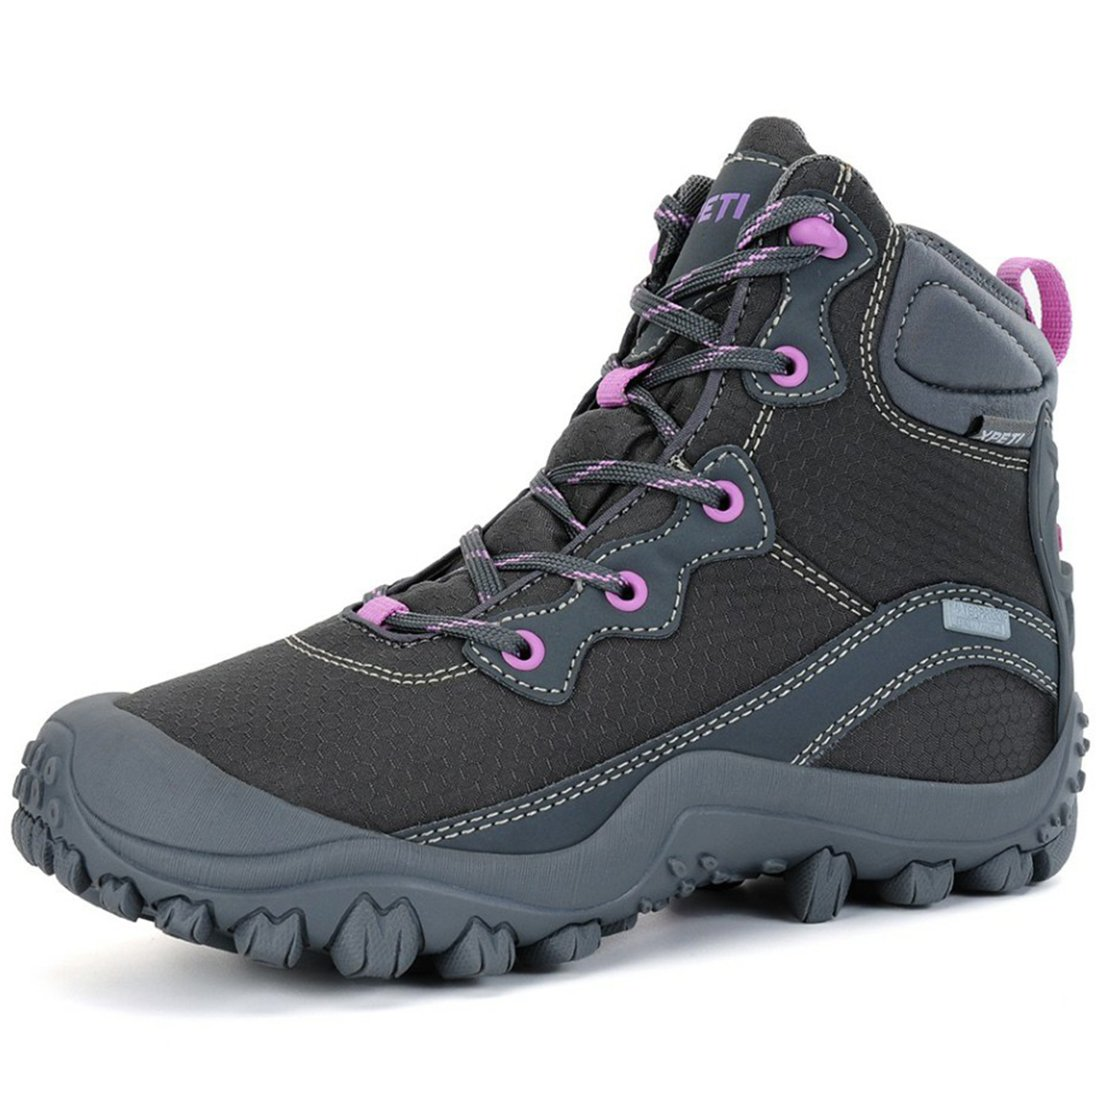 XPETI Women's Dimo Mid Waterproof Hiking Outdoor Boot Gray 10.5 by XPETI